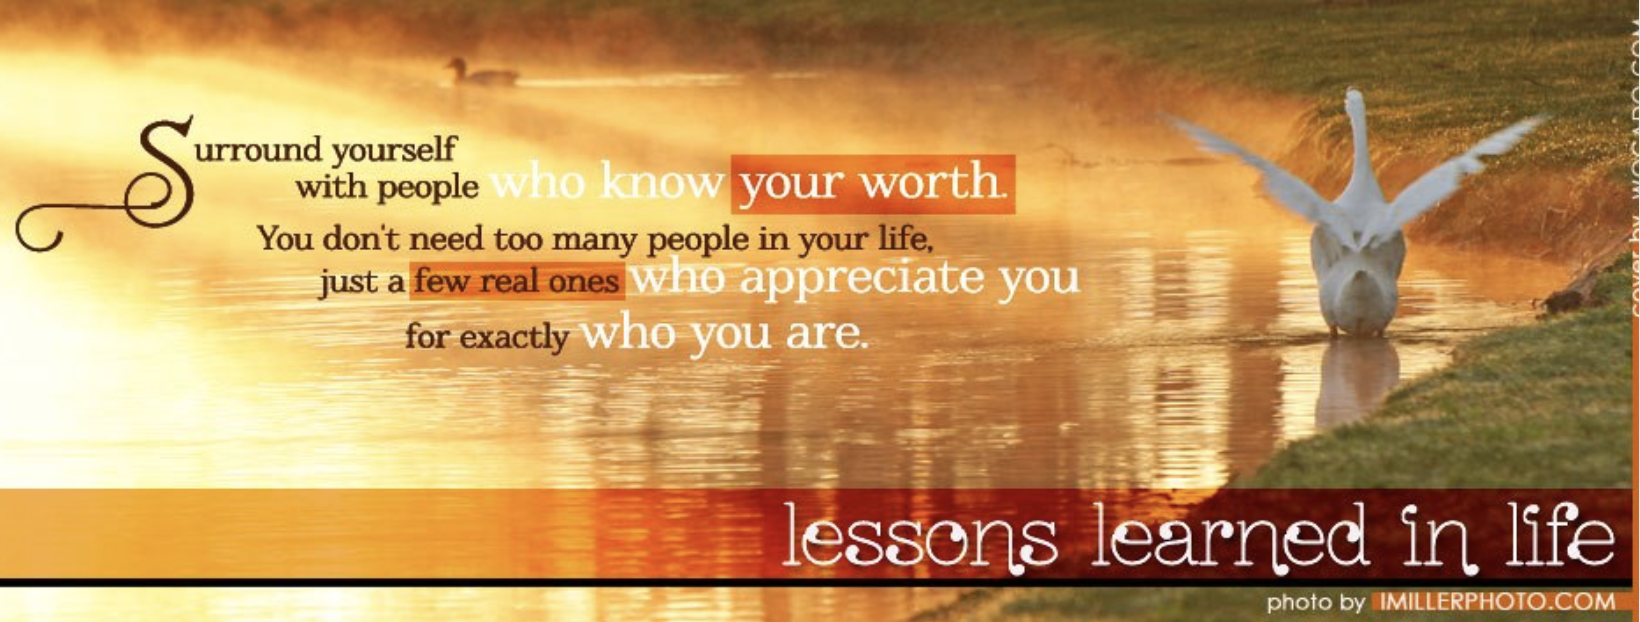 Lessons Learned In Life Facebook Page Image